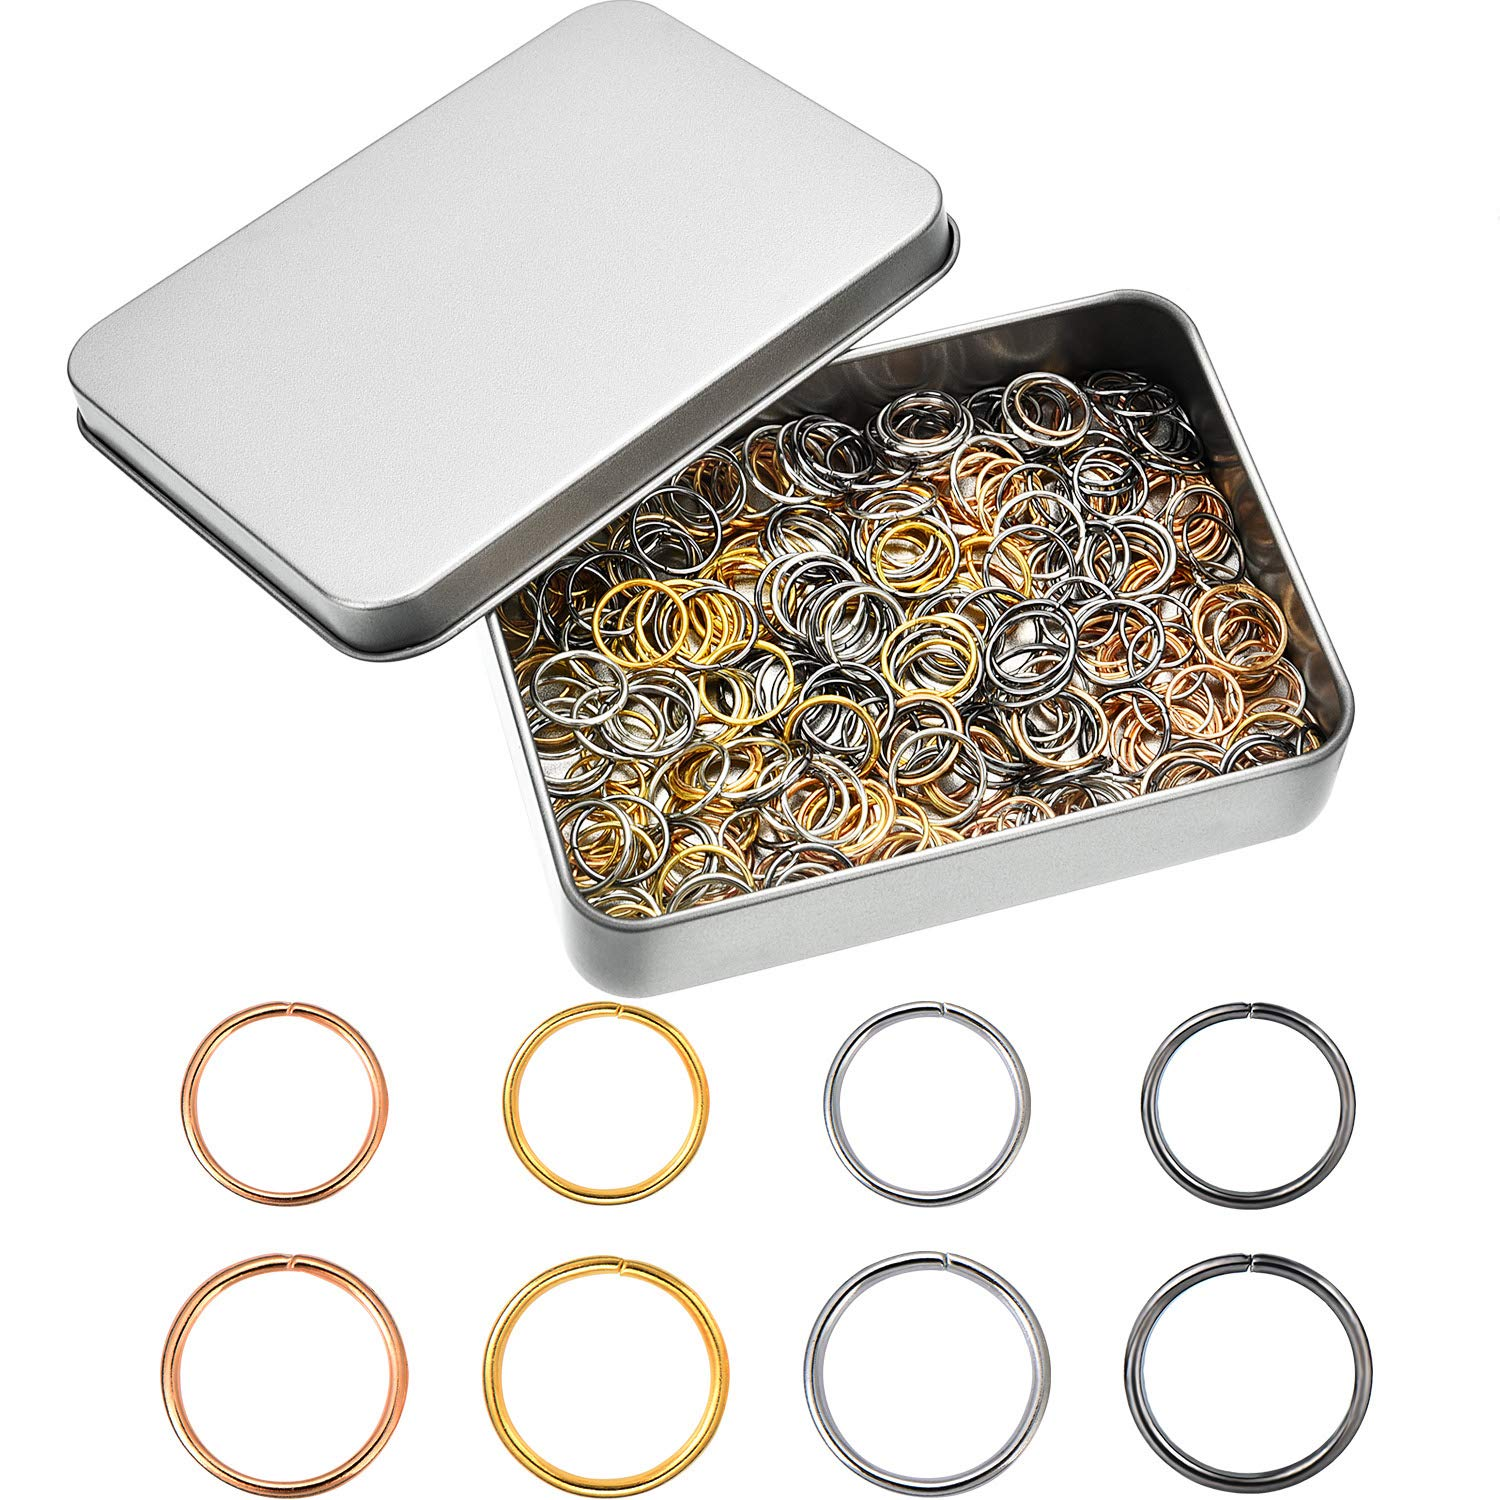 TecUnite 400 Pieces Hair Rings Braid Rings Hair Hoops Hair Clips Jewelry with a Storage Box, 4 Colors, 2 Sizes